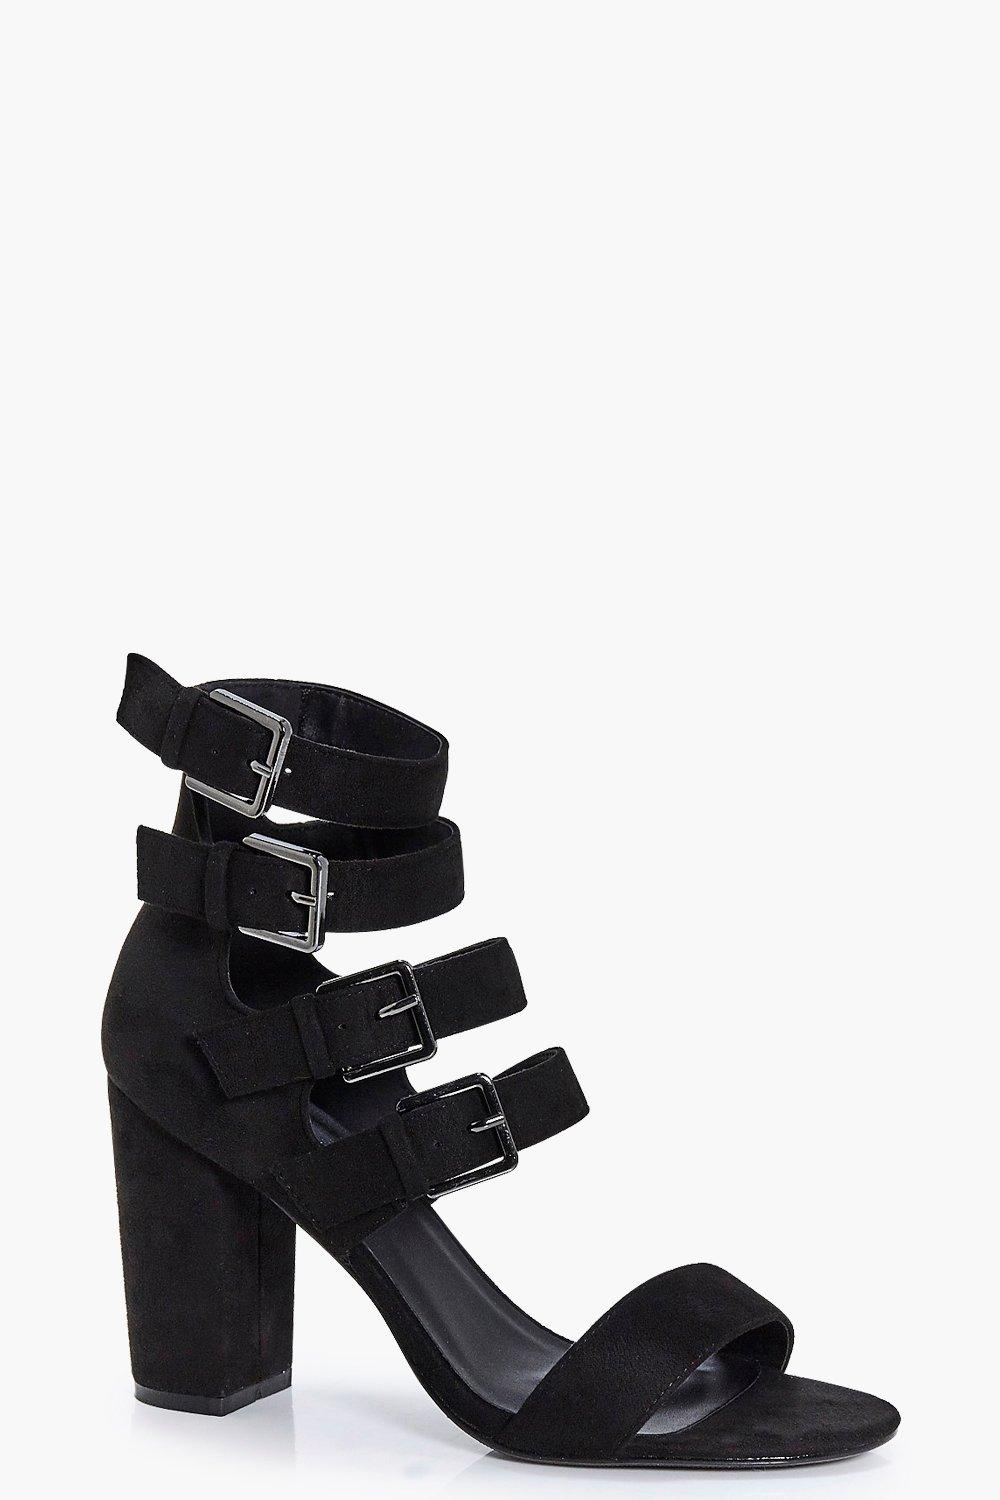 Tilly Multi Buckle Block Heel